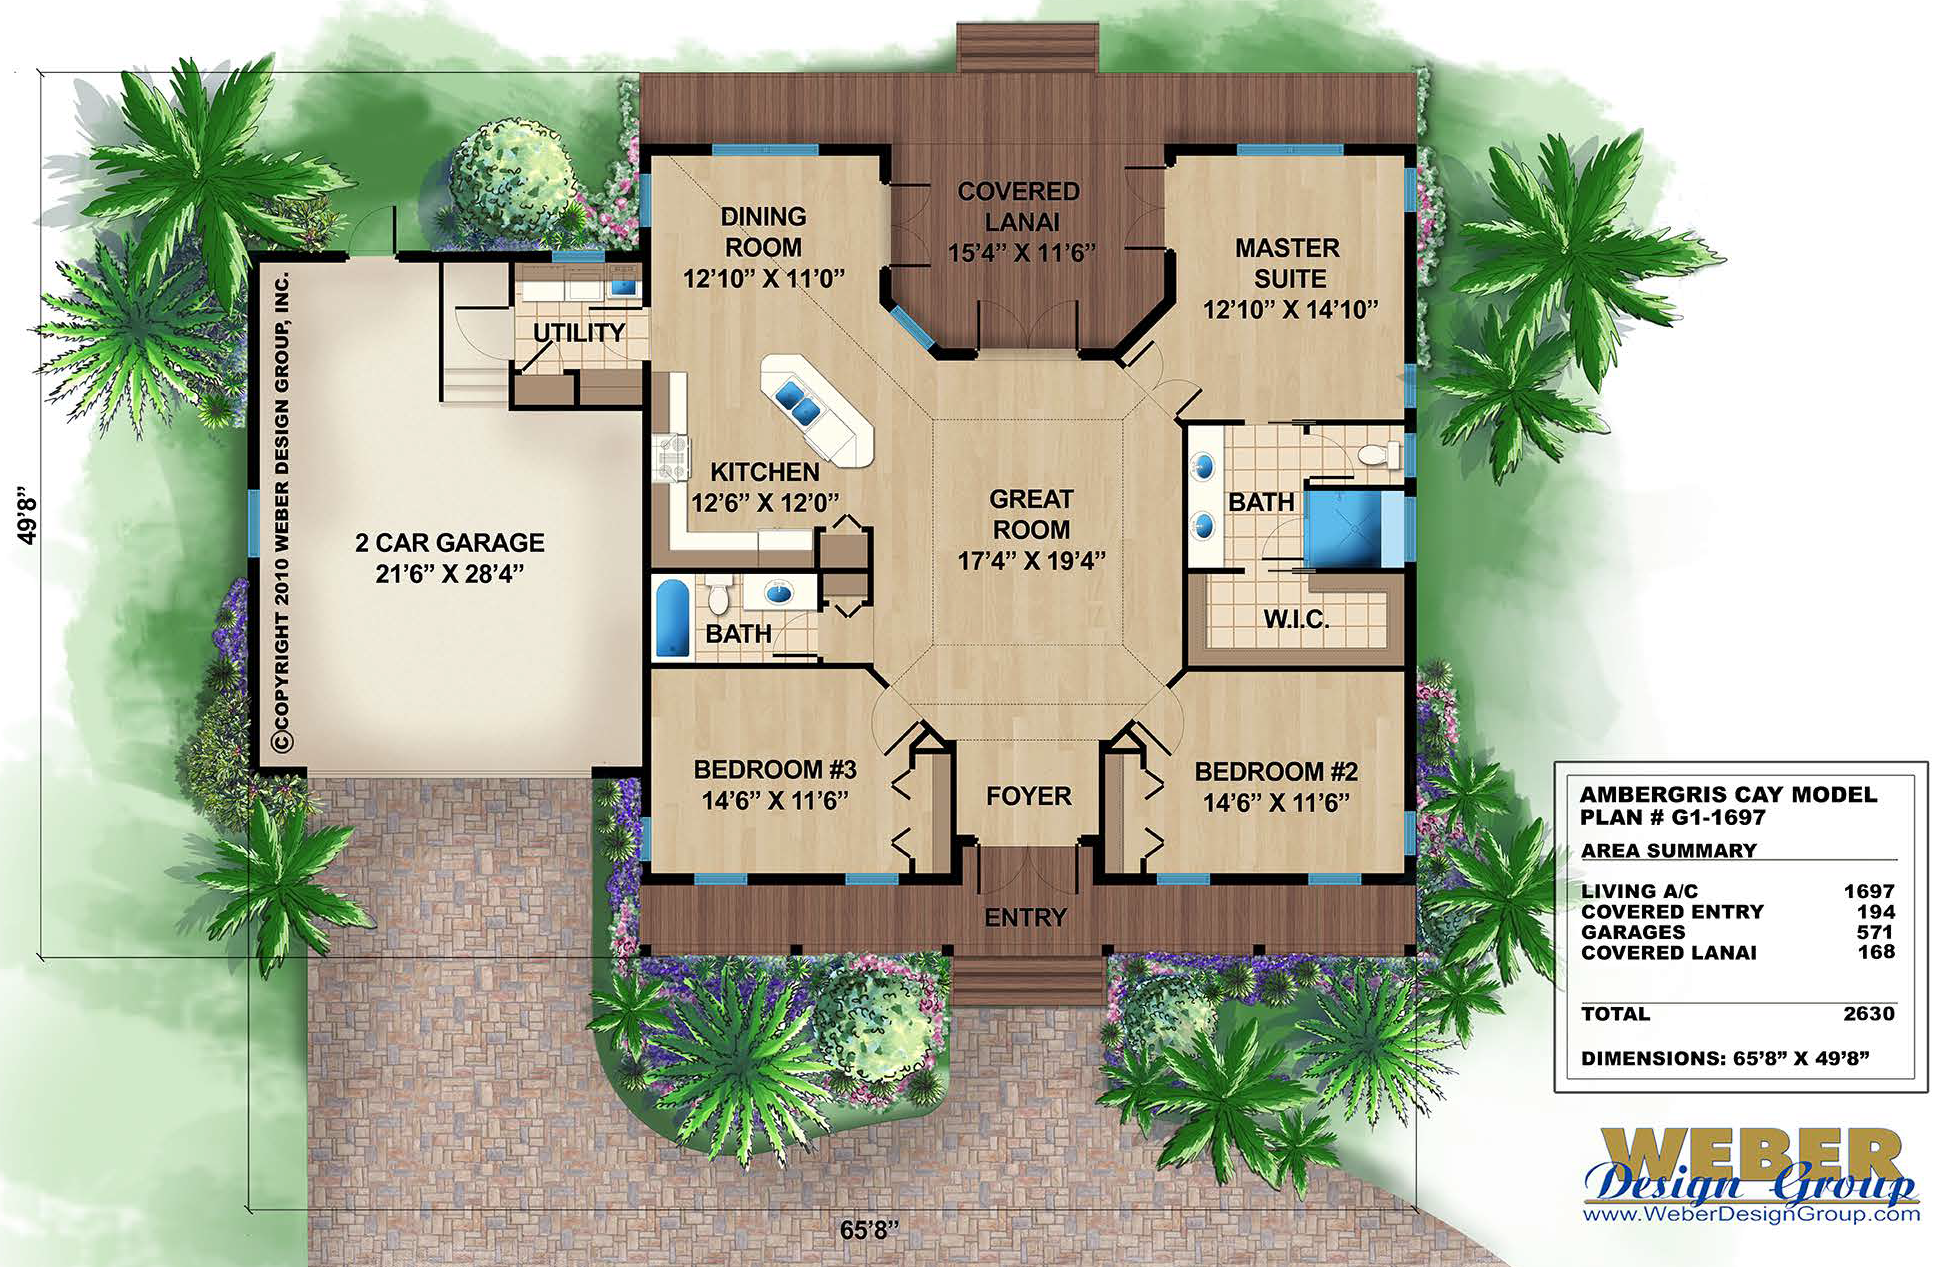 b63aa43ff6b517e632e84196ba83ae19 Large Single Story House Plans Florida Lania on